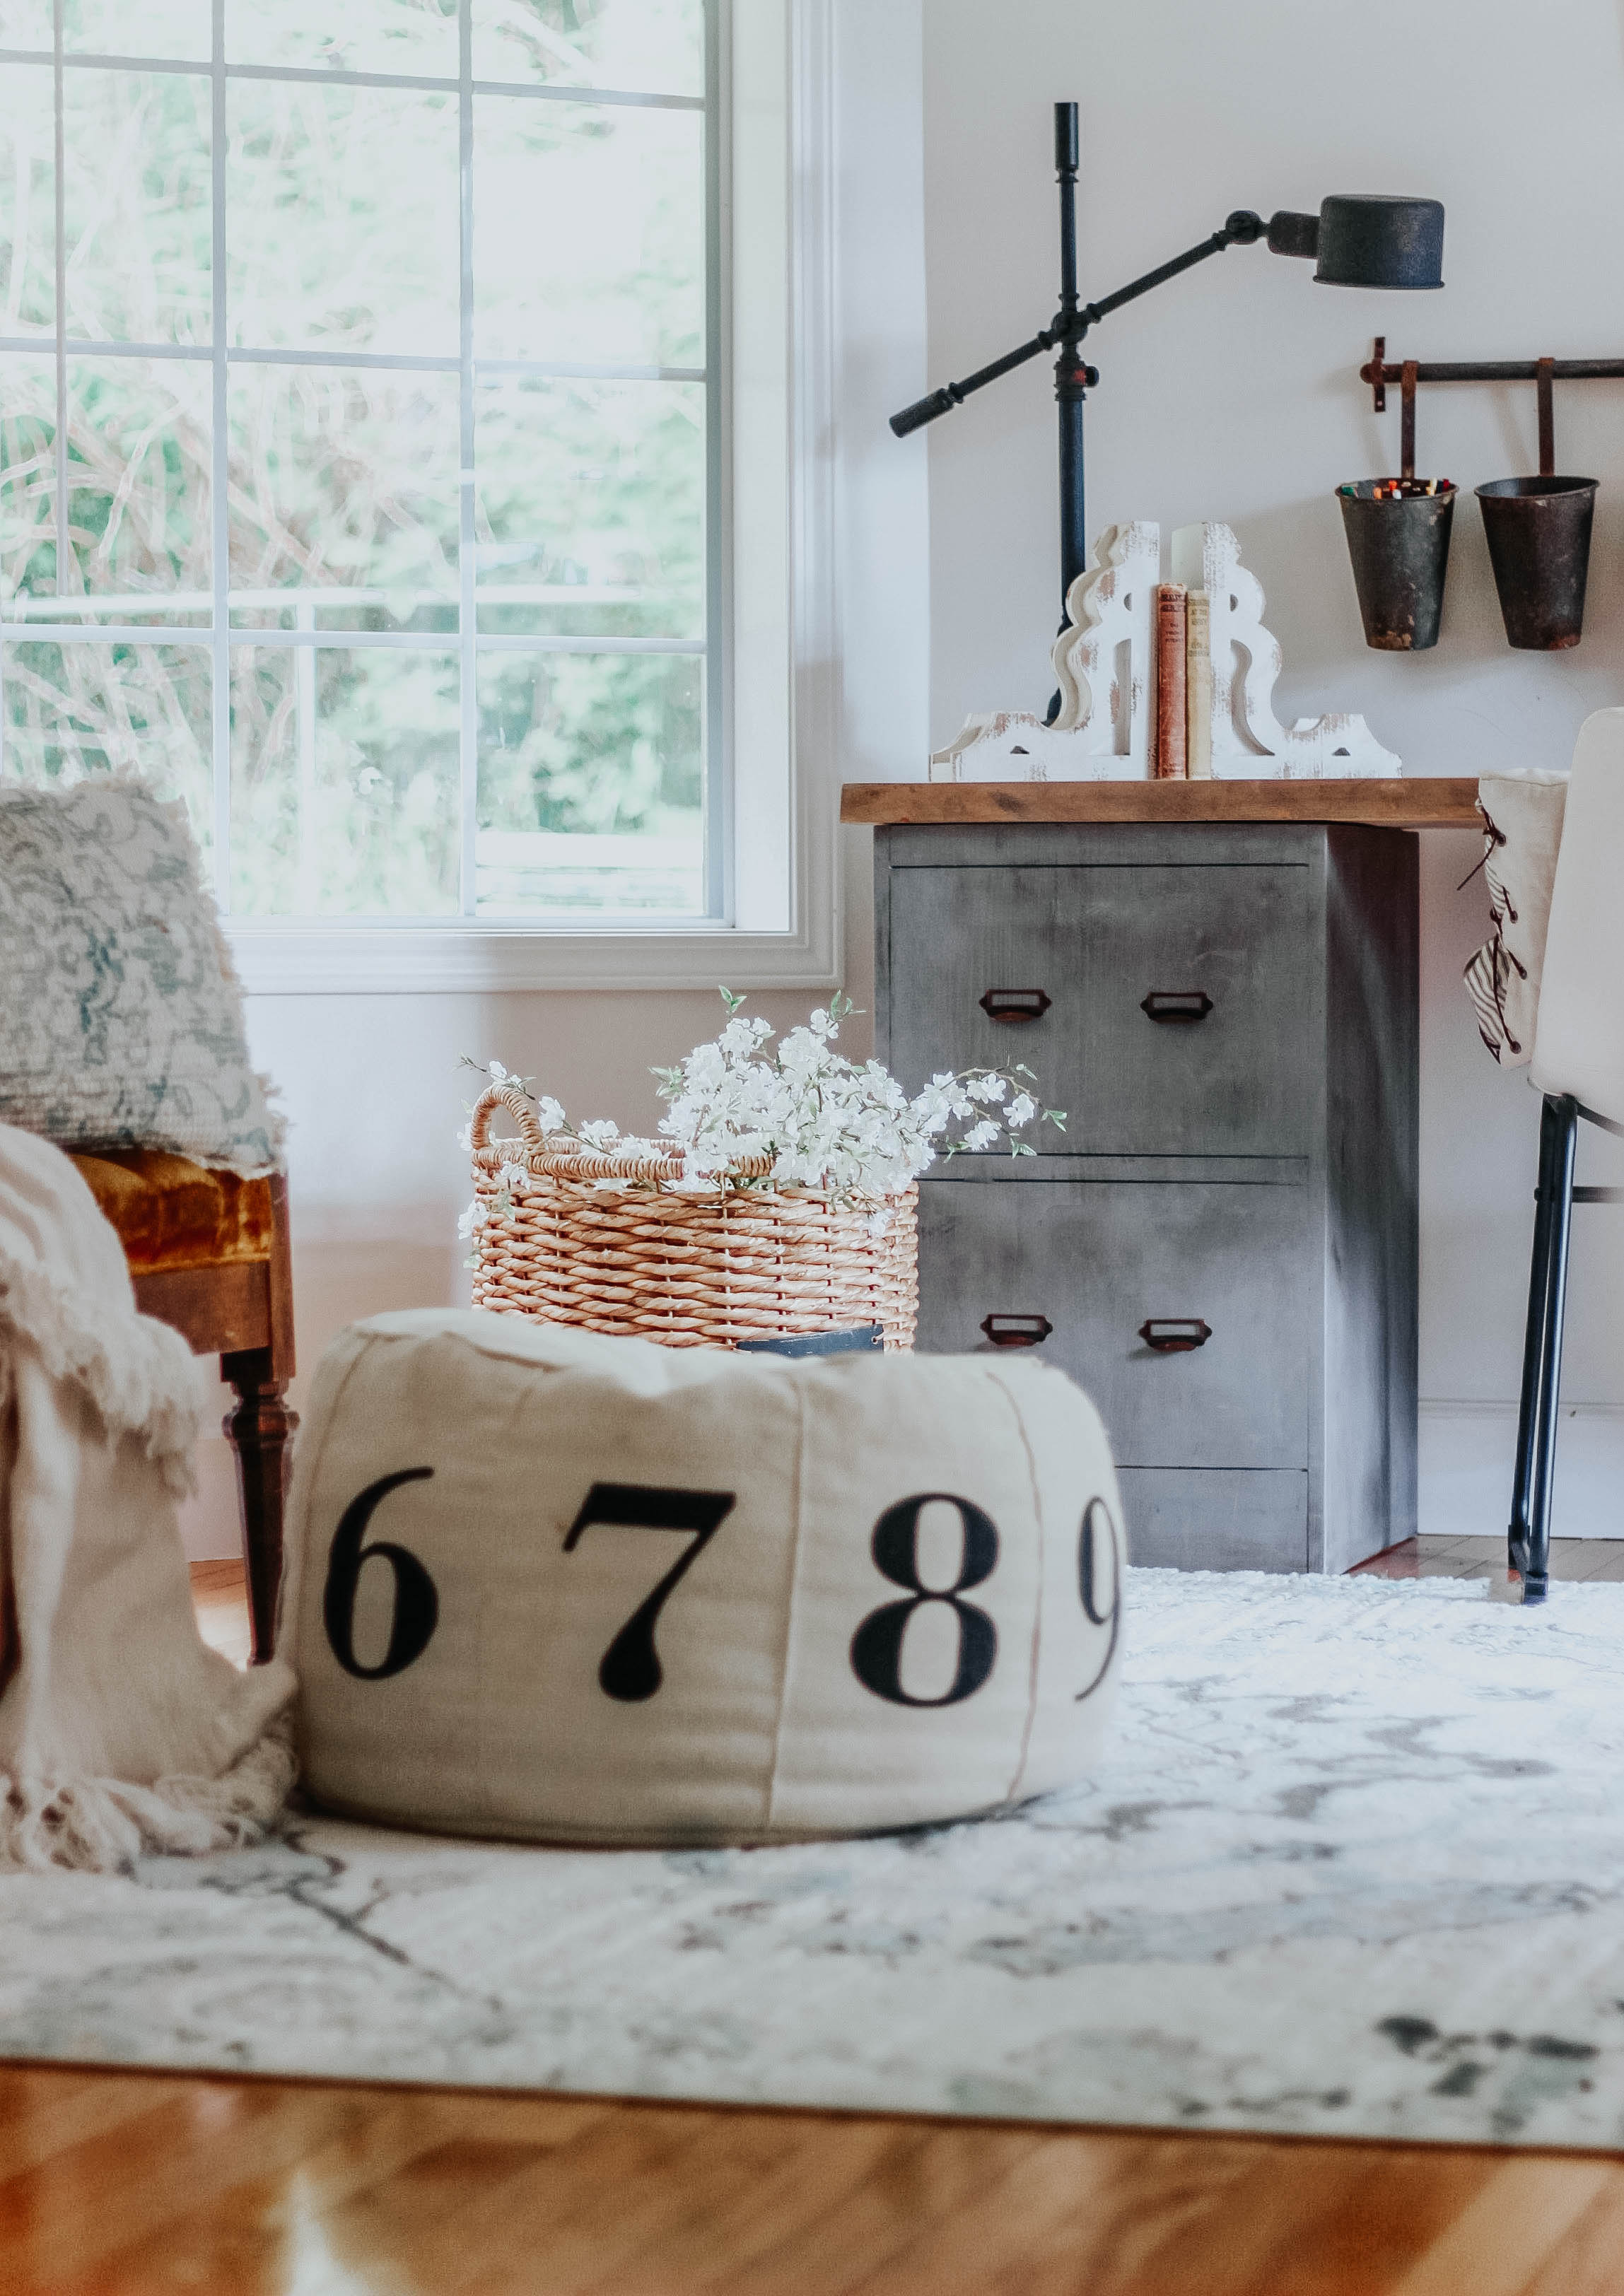 Magnolia Homes With Pier One. Decorating our Modern Farmhouse With Joanna Gaines New Line, #FarmhouseDecor #farmhouse www.whitepicketfarmhouse.com